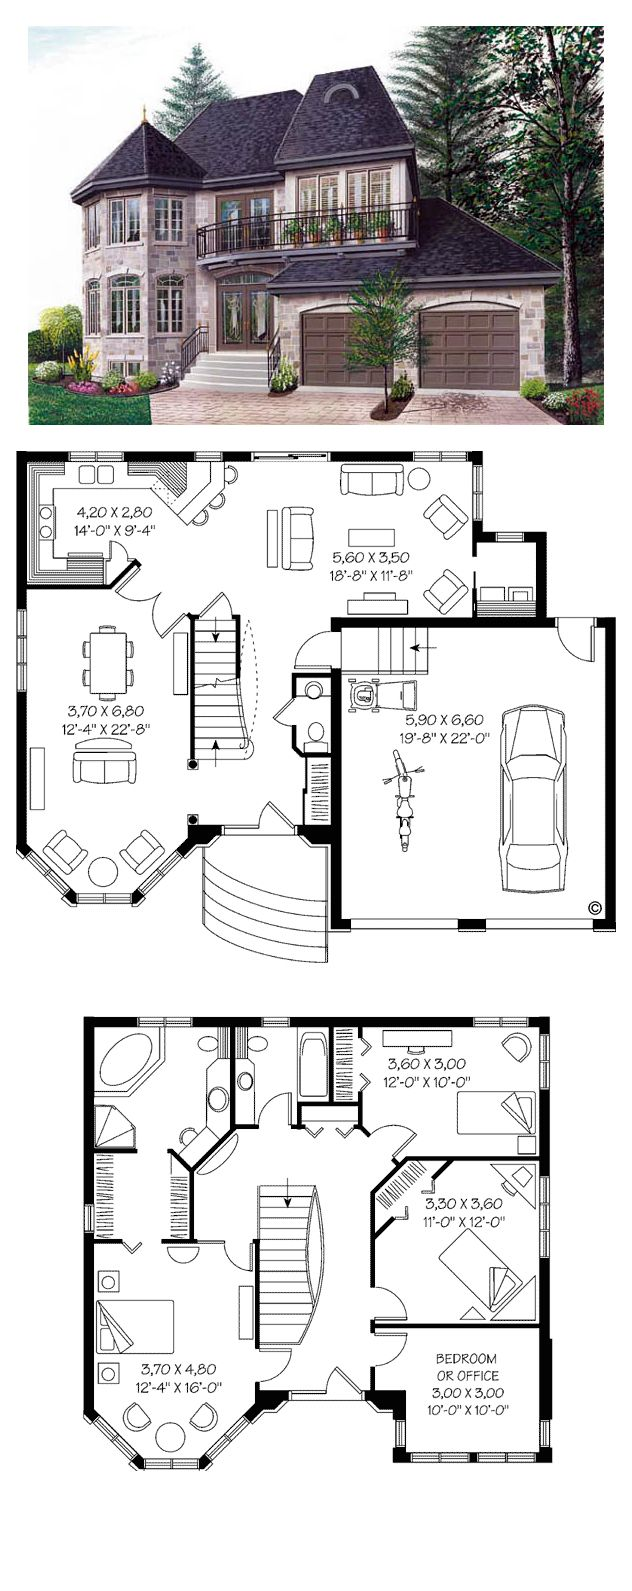 marvelous 4 family house plans #9: Victorian House Plan 65210 | Total Living Area: 1976 sq. ft., 3